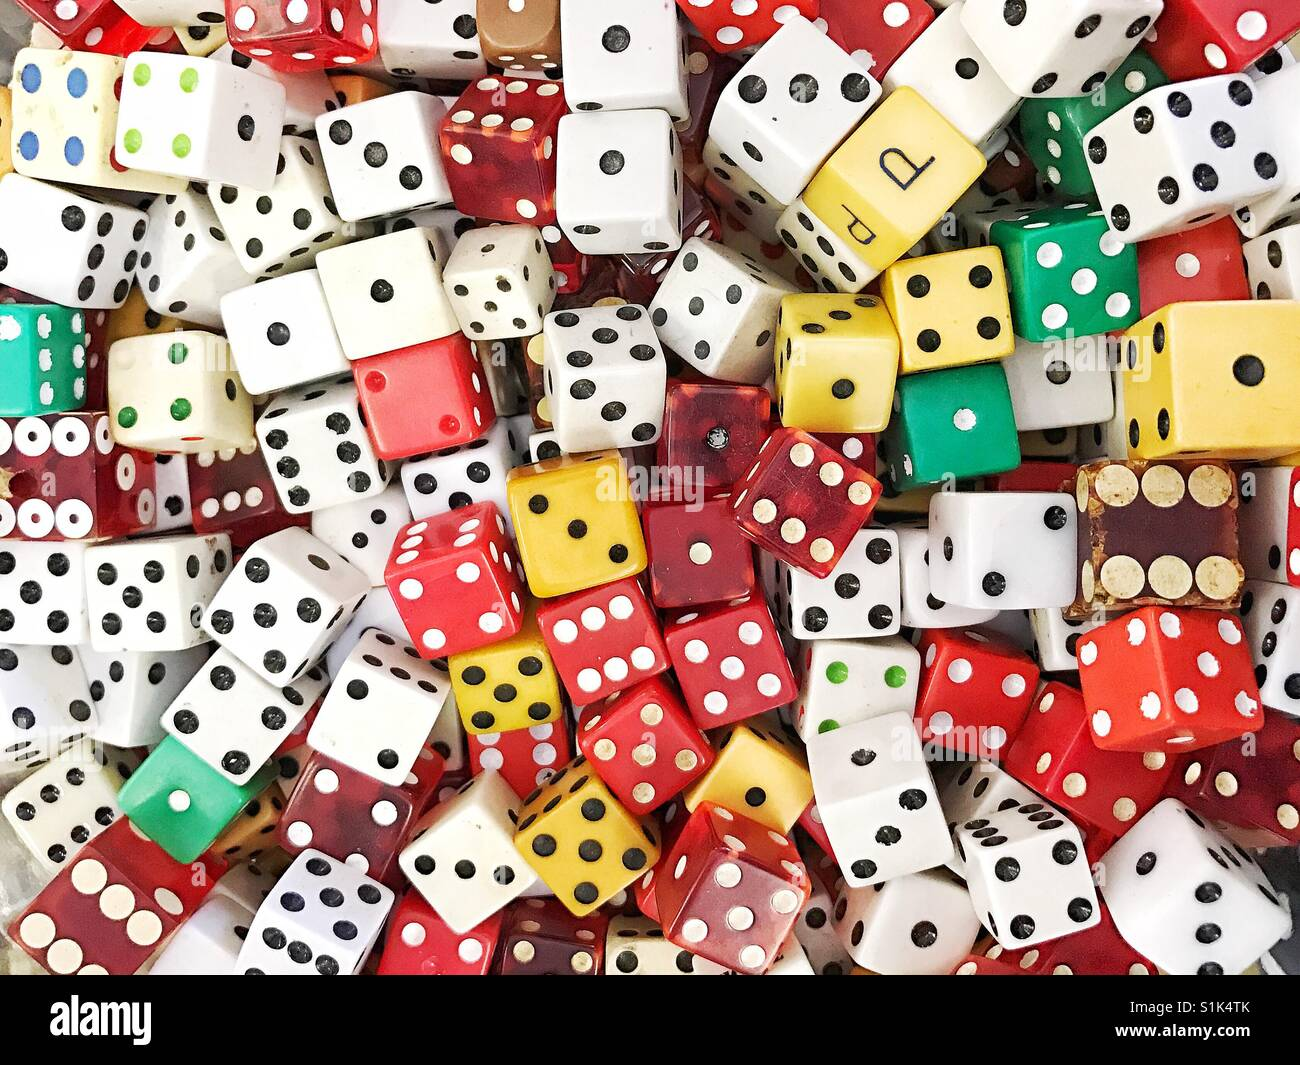 Multi Colored Dice Stock Photos & Multi Colored Dice Stock Images ...